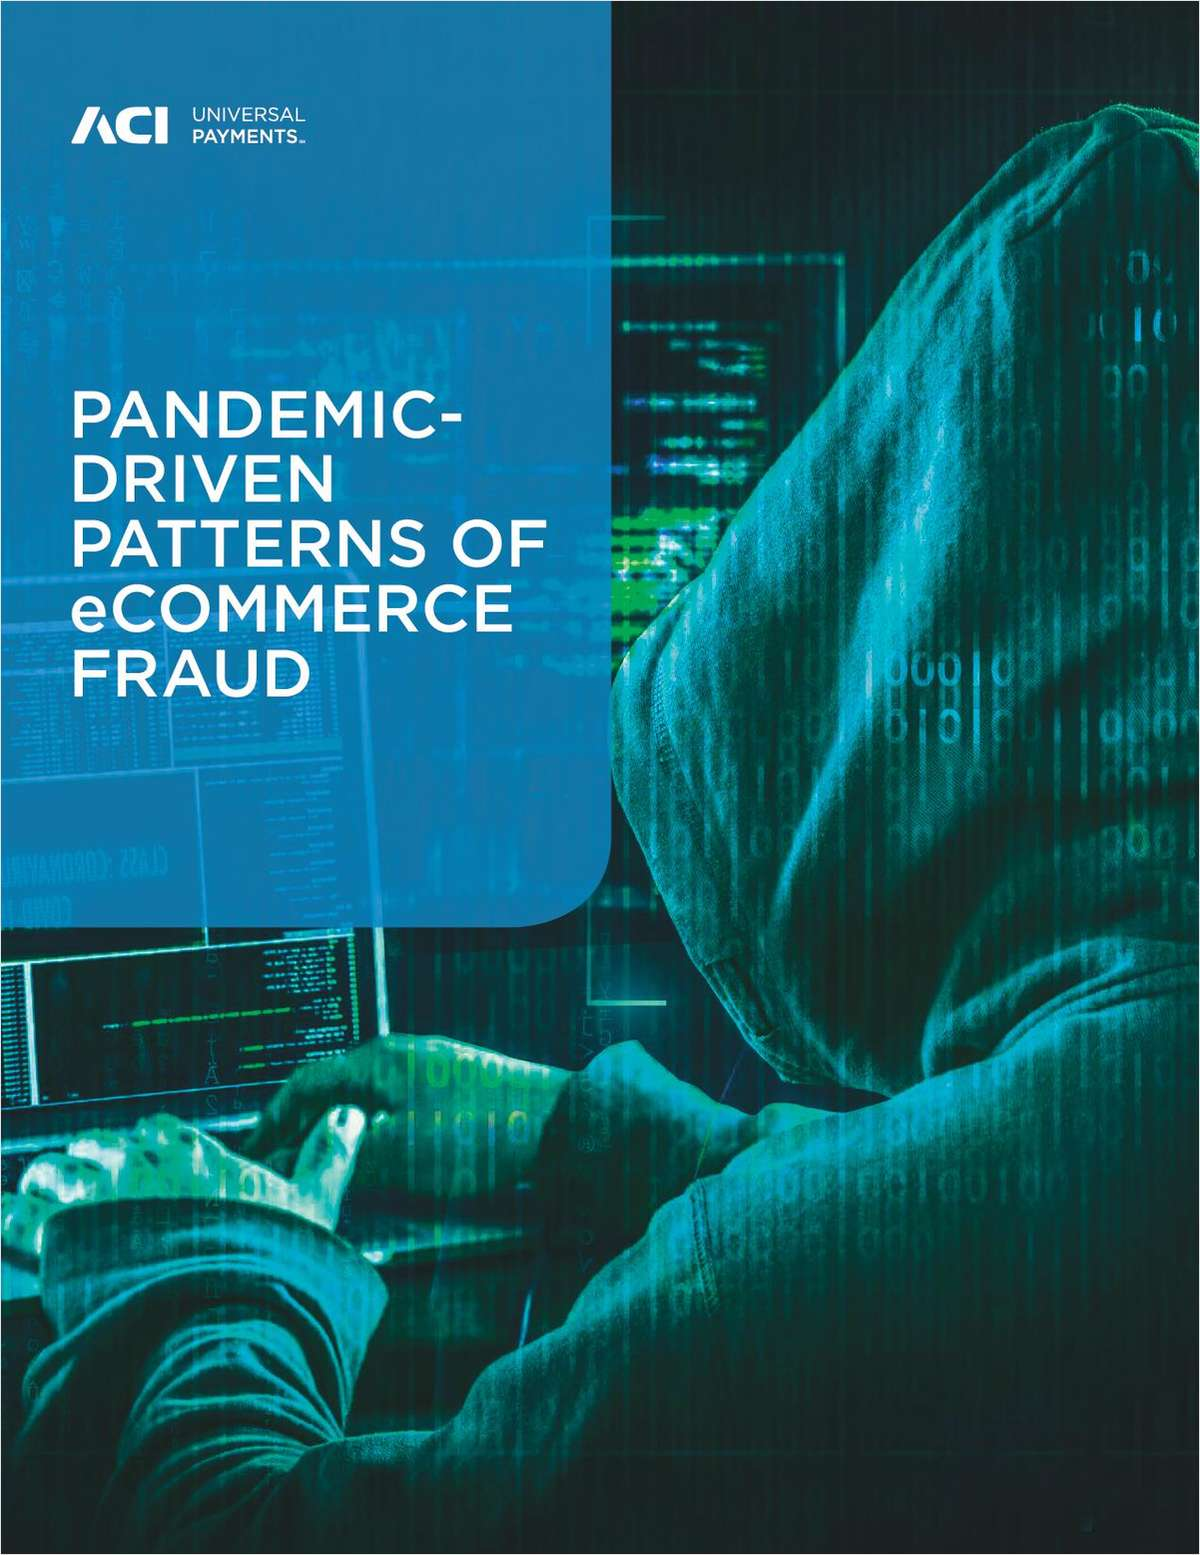 Merchant Fraud Management: Pandemic-Driven Patterns of eCommerce Fraud